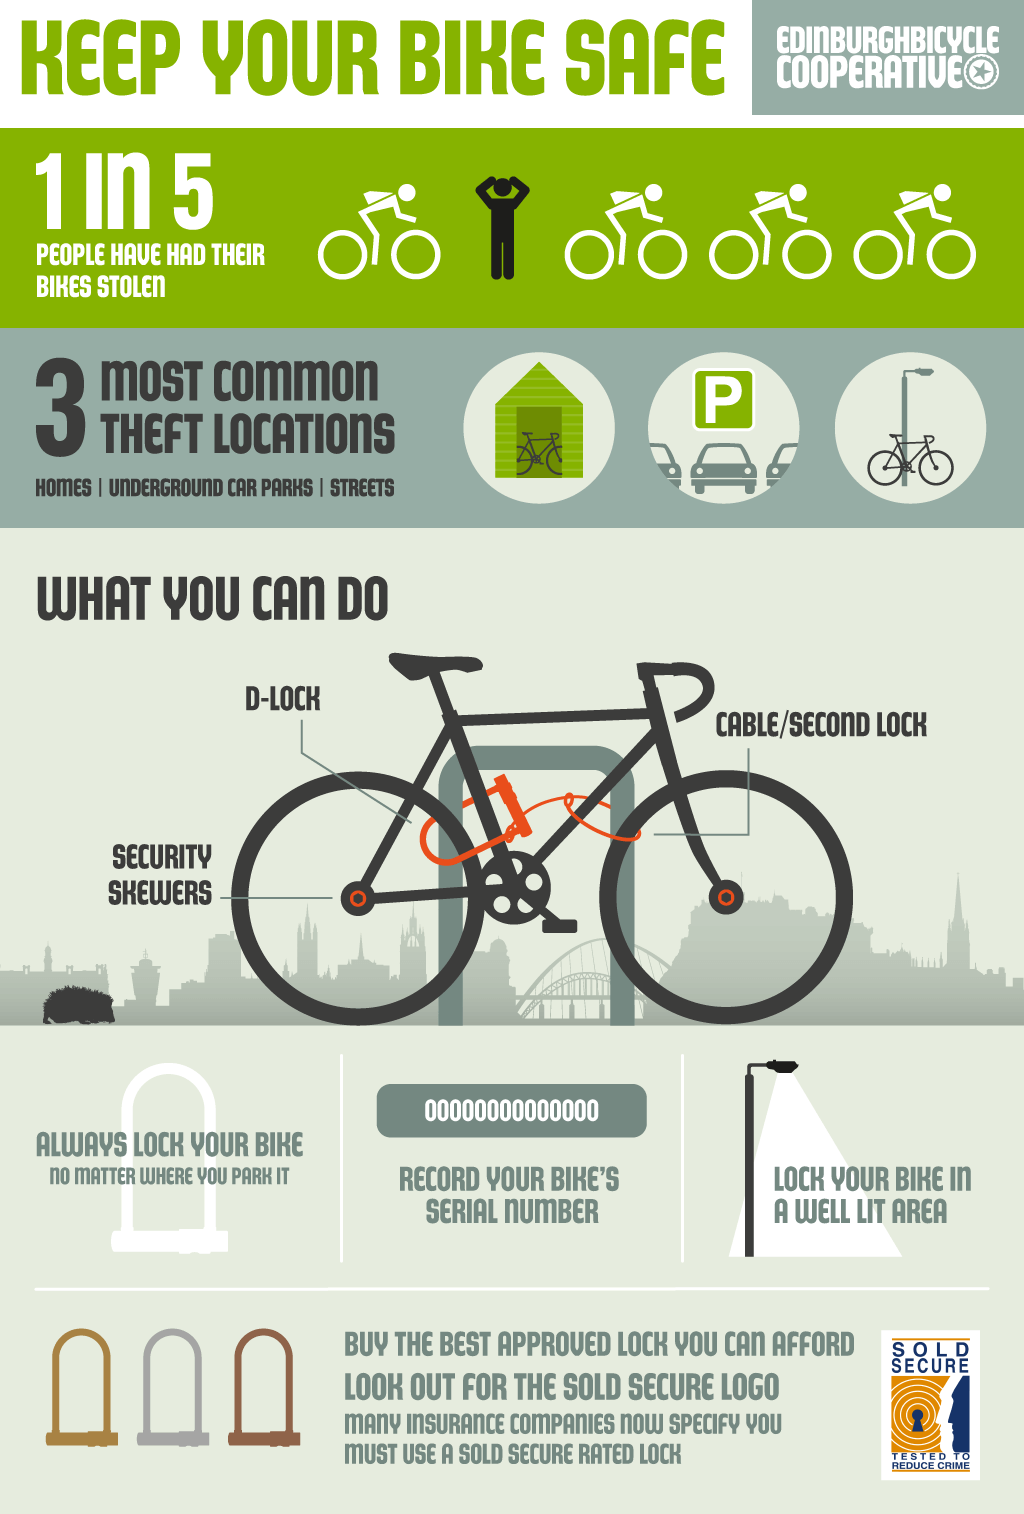 How to keep your bike secure